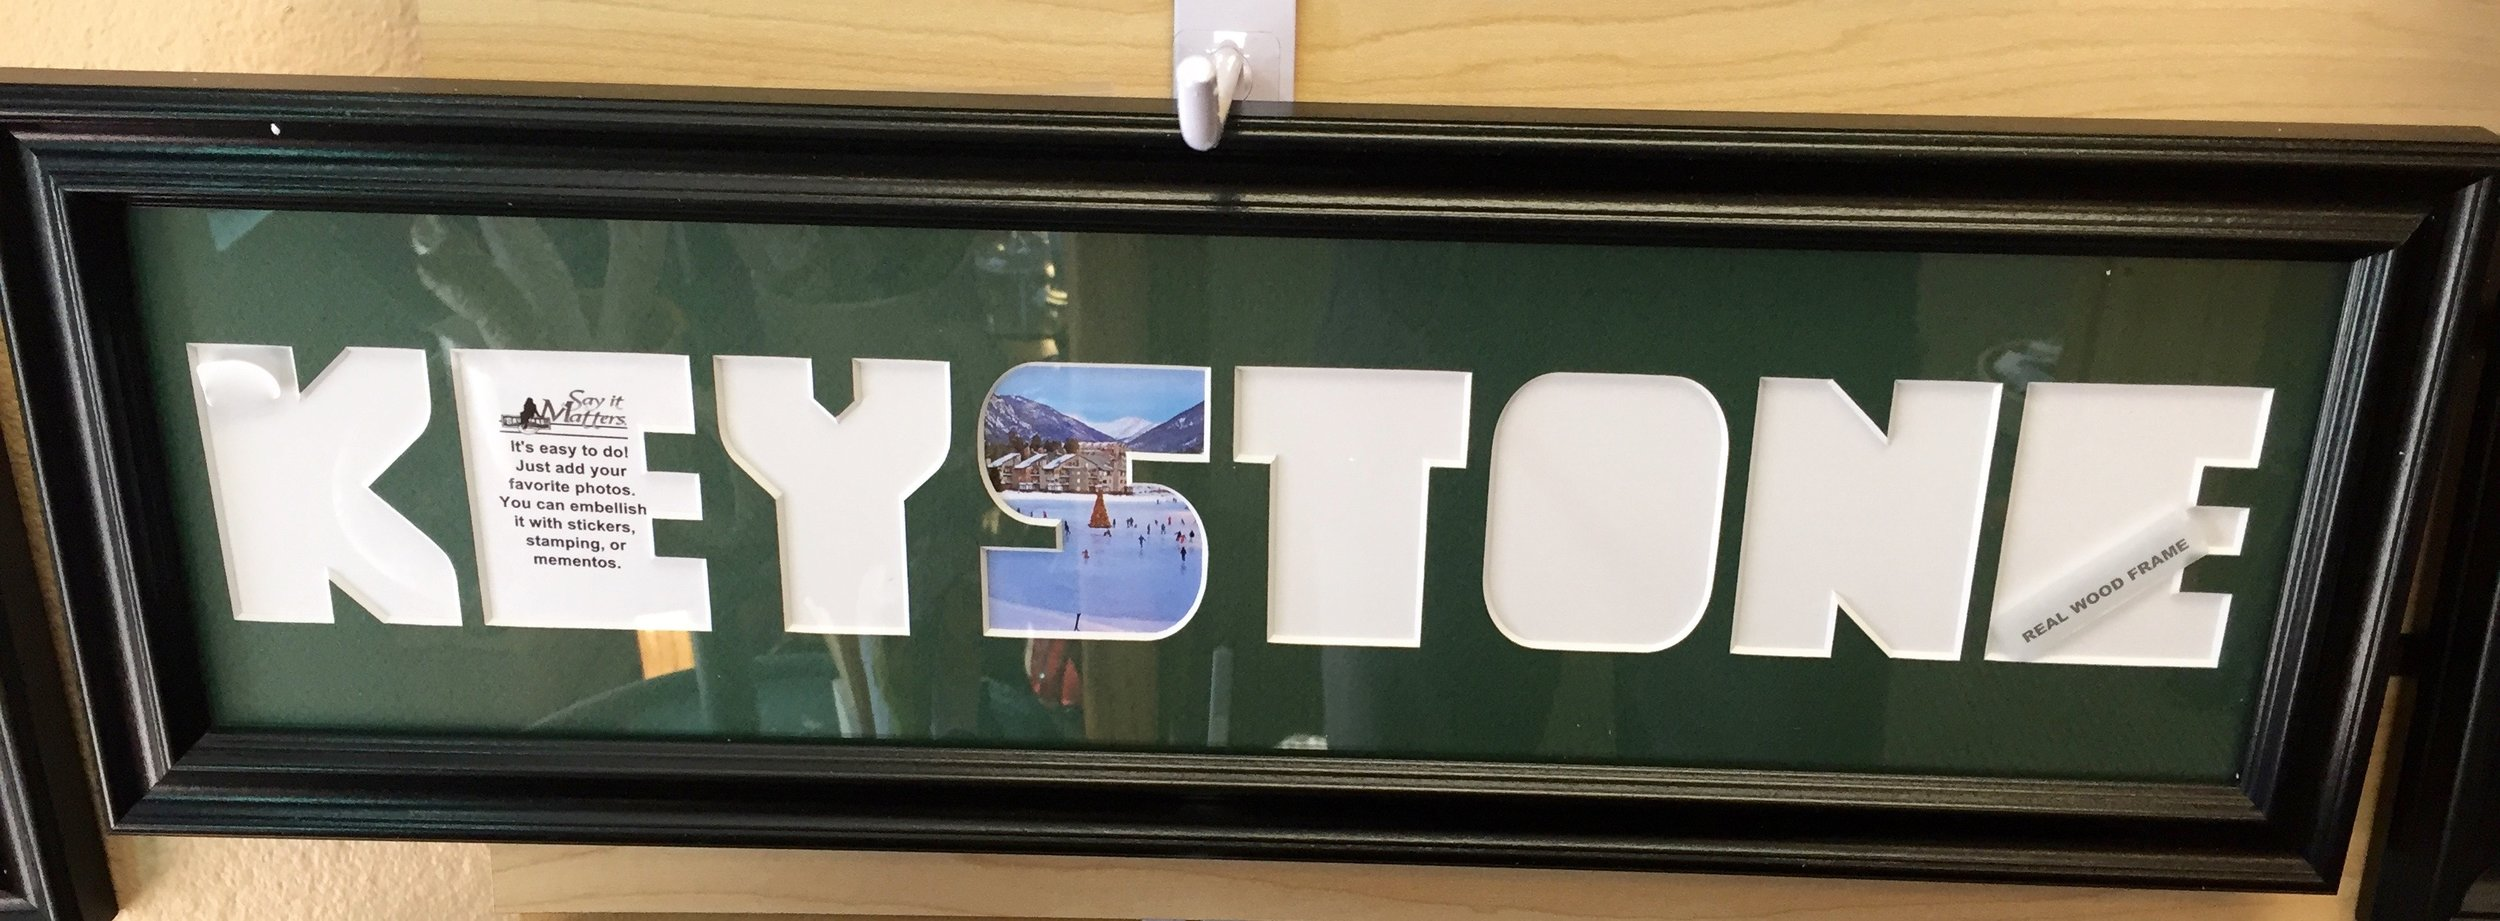 You can personalize this frame with your own Keystone memories!